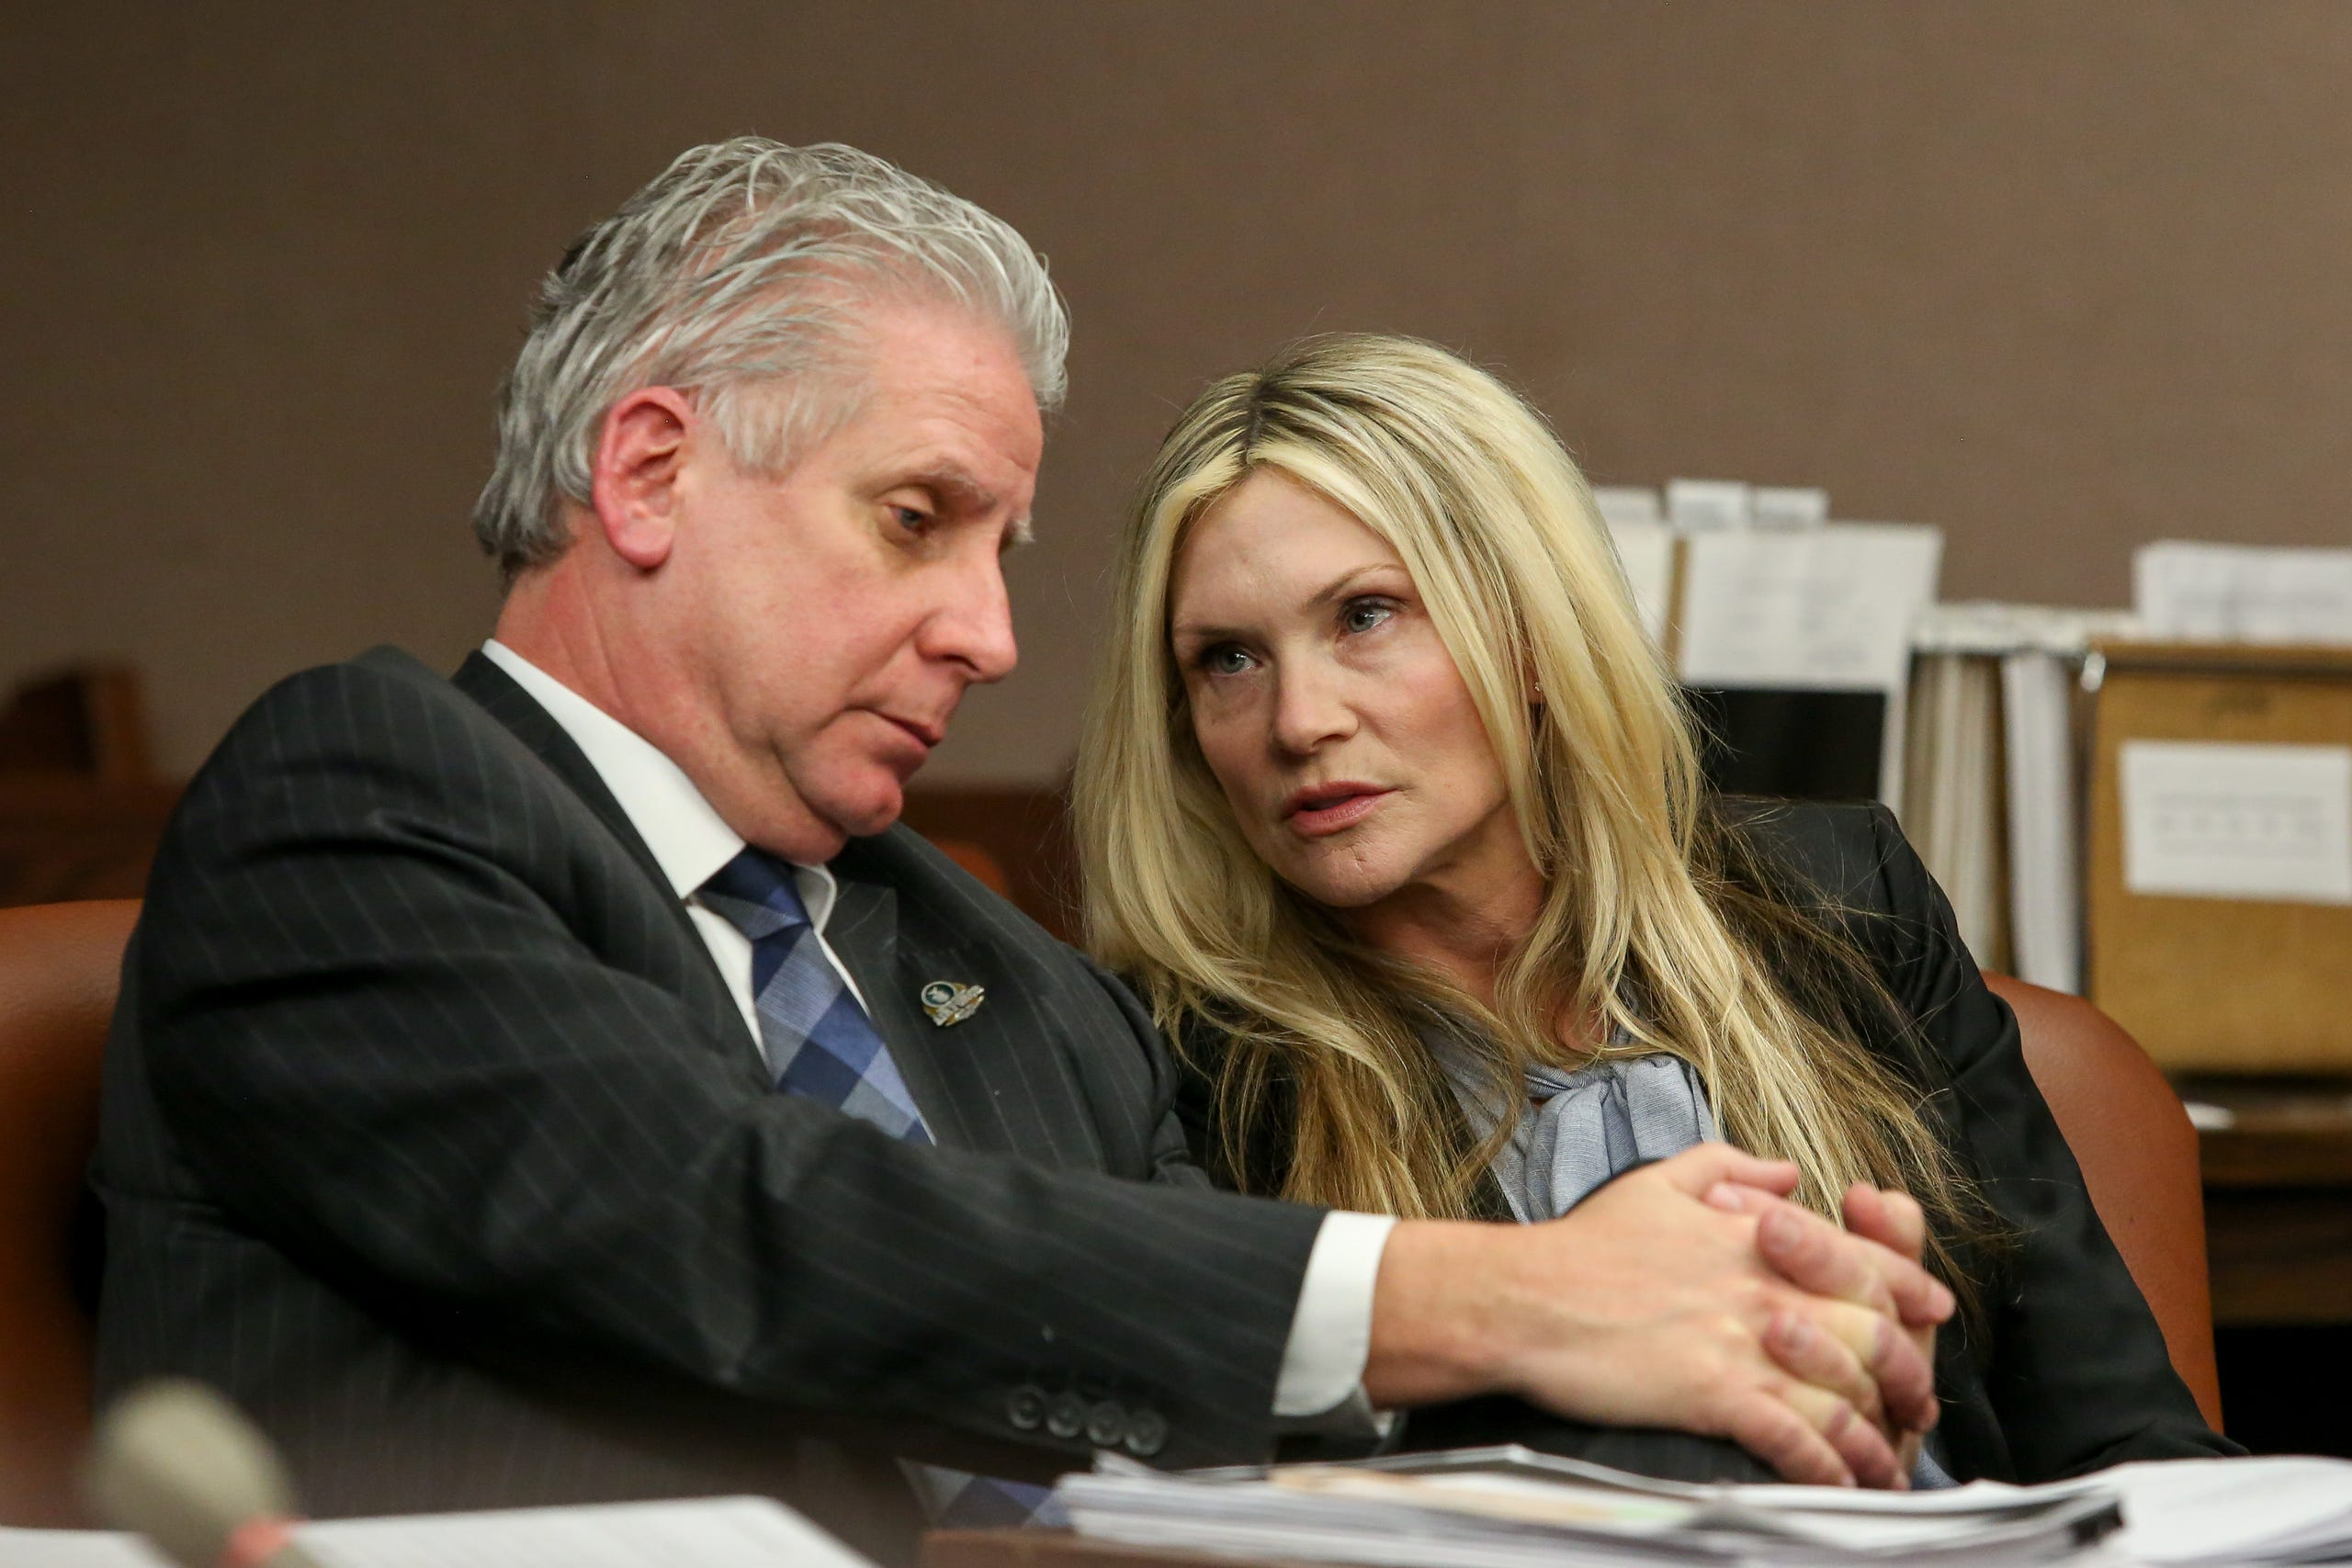 Amy Locane Melrose Place Pictures amy locane, 'melrose place' actress, resentenced for fatal